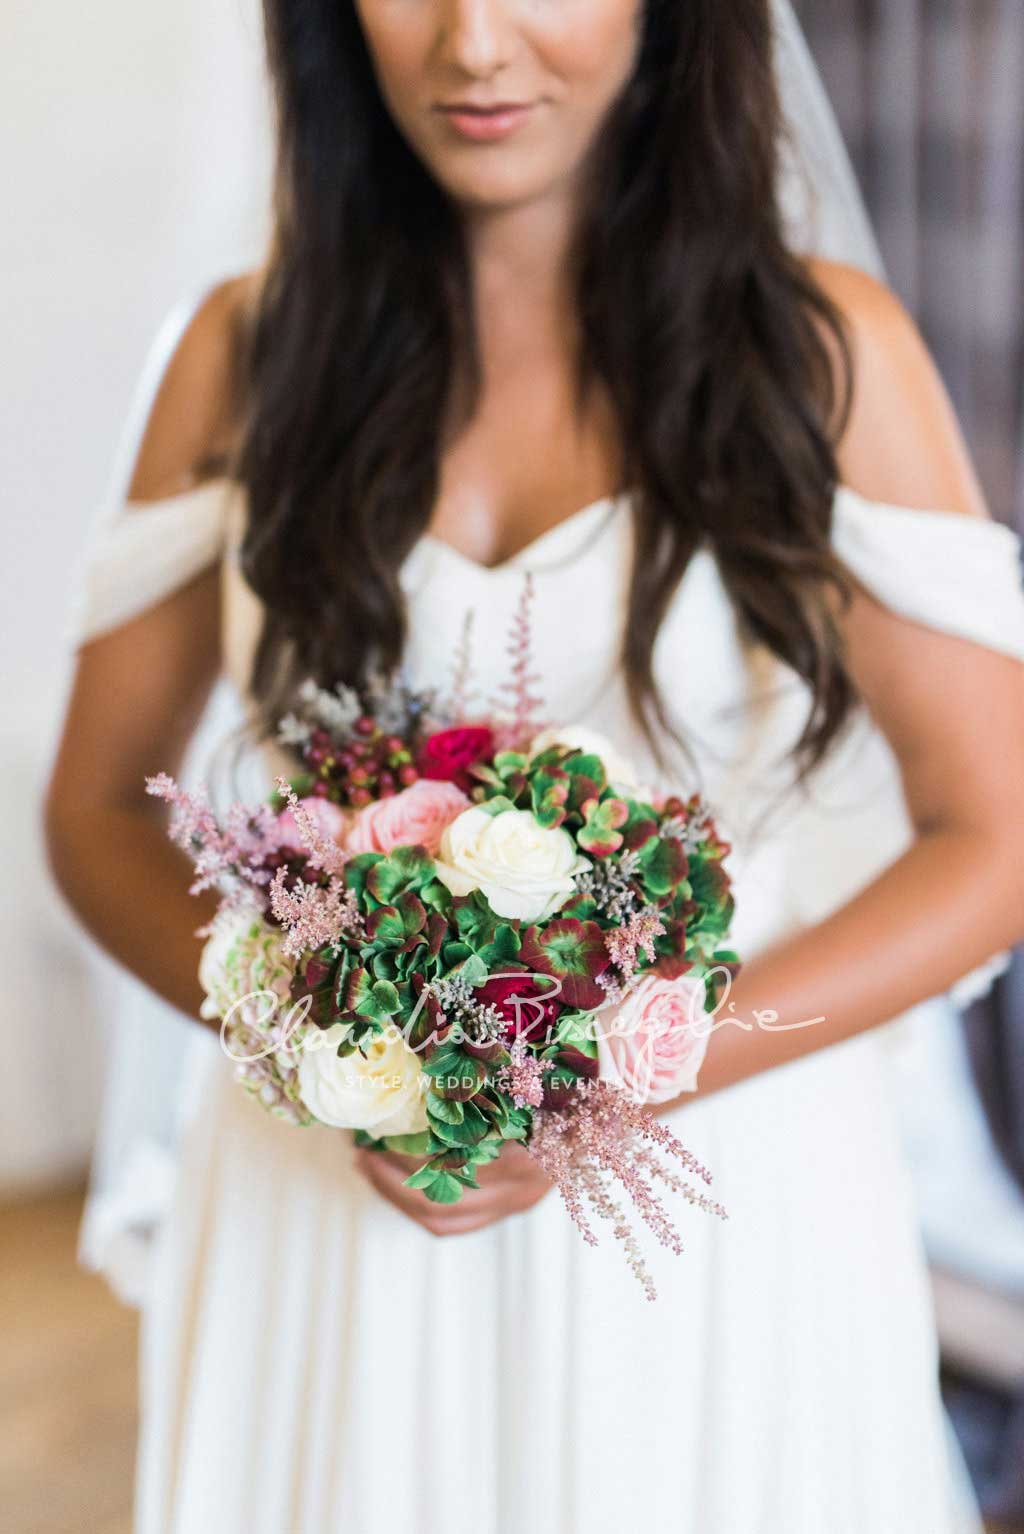 -Bouquet-bridalflowers-roses-composition-ClaudiaBisceglieWeddingplanner